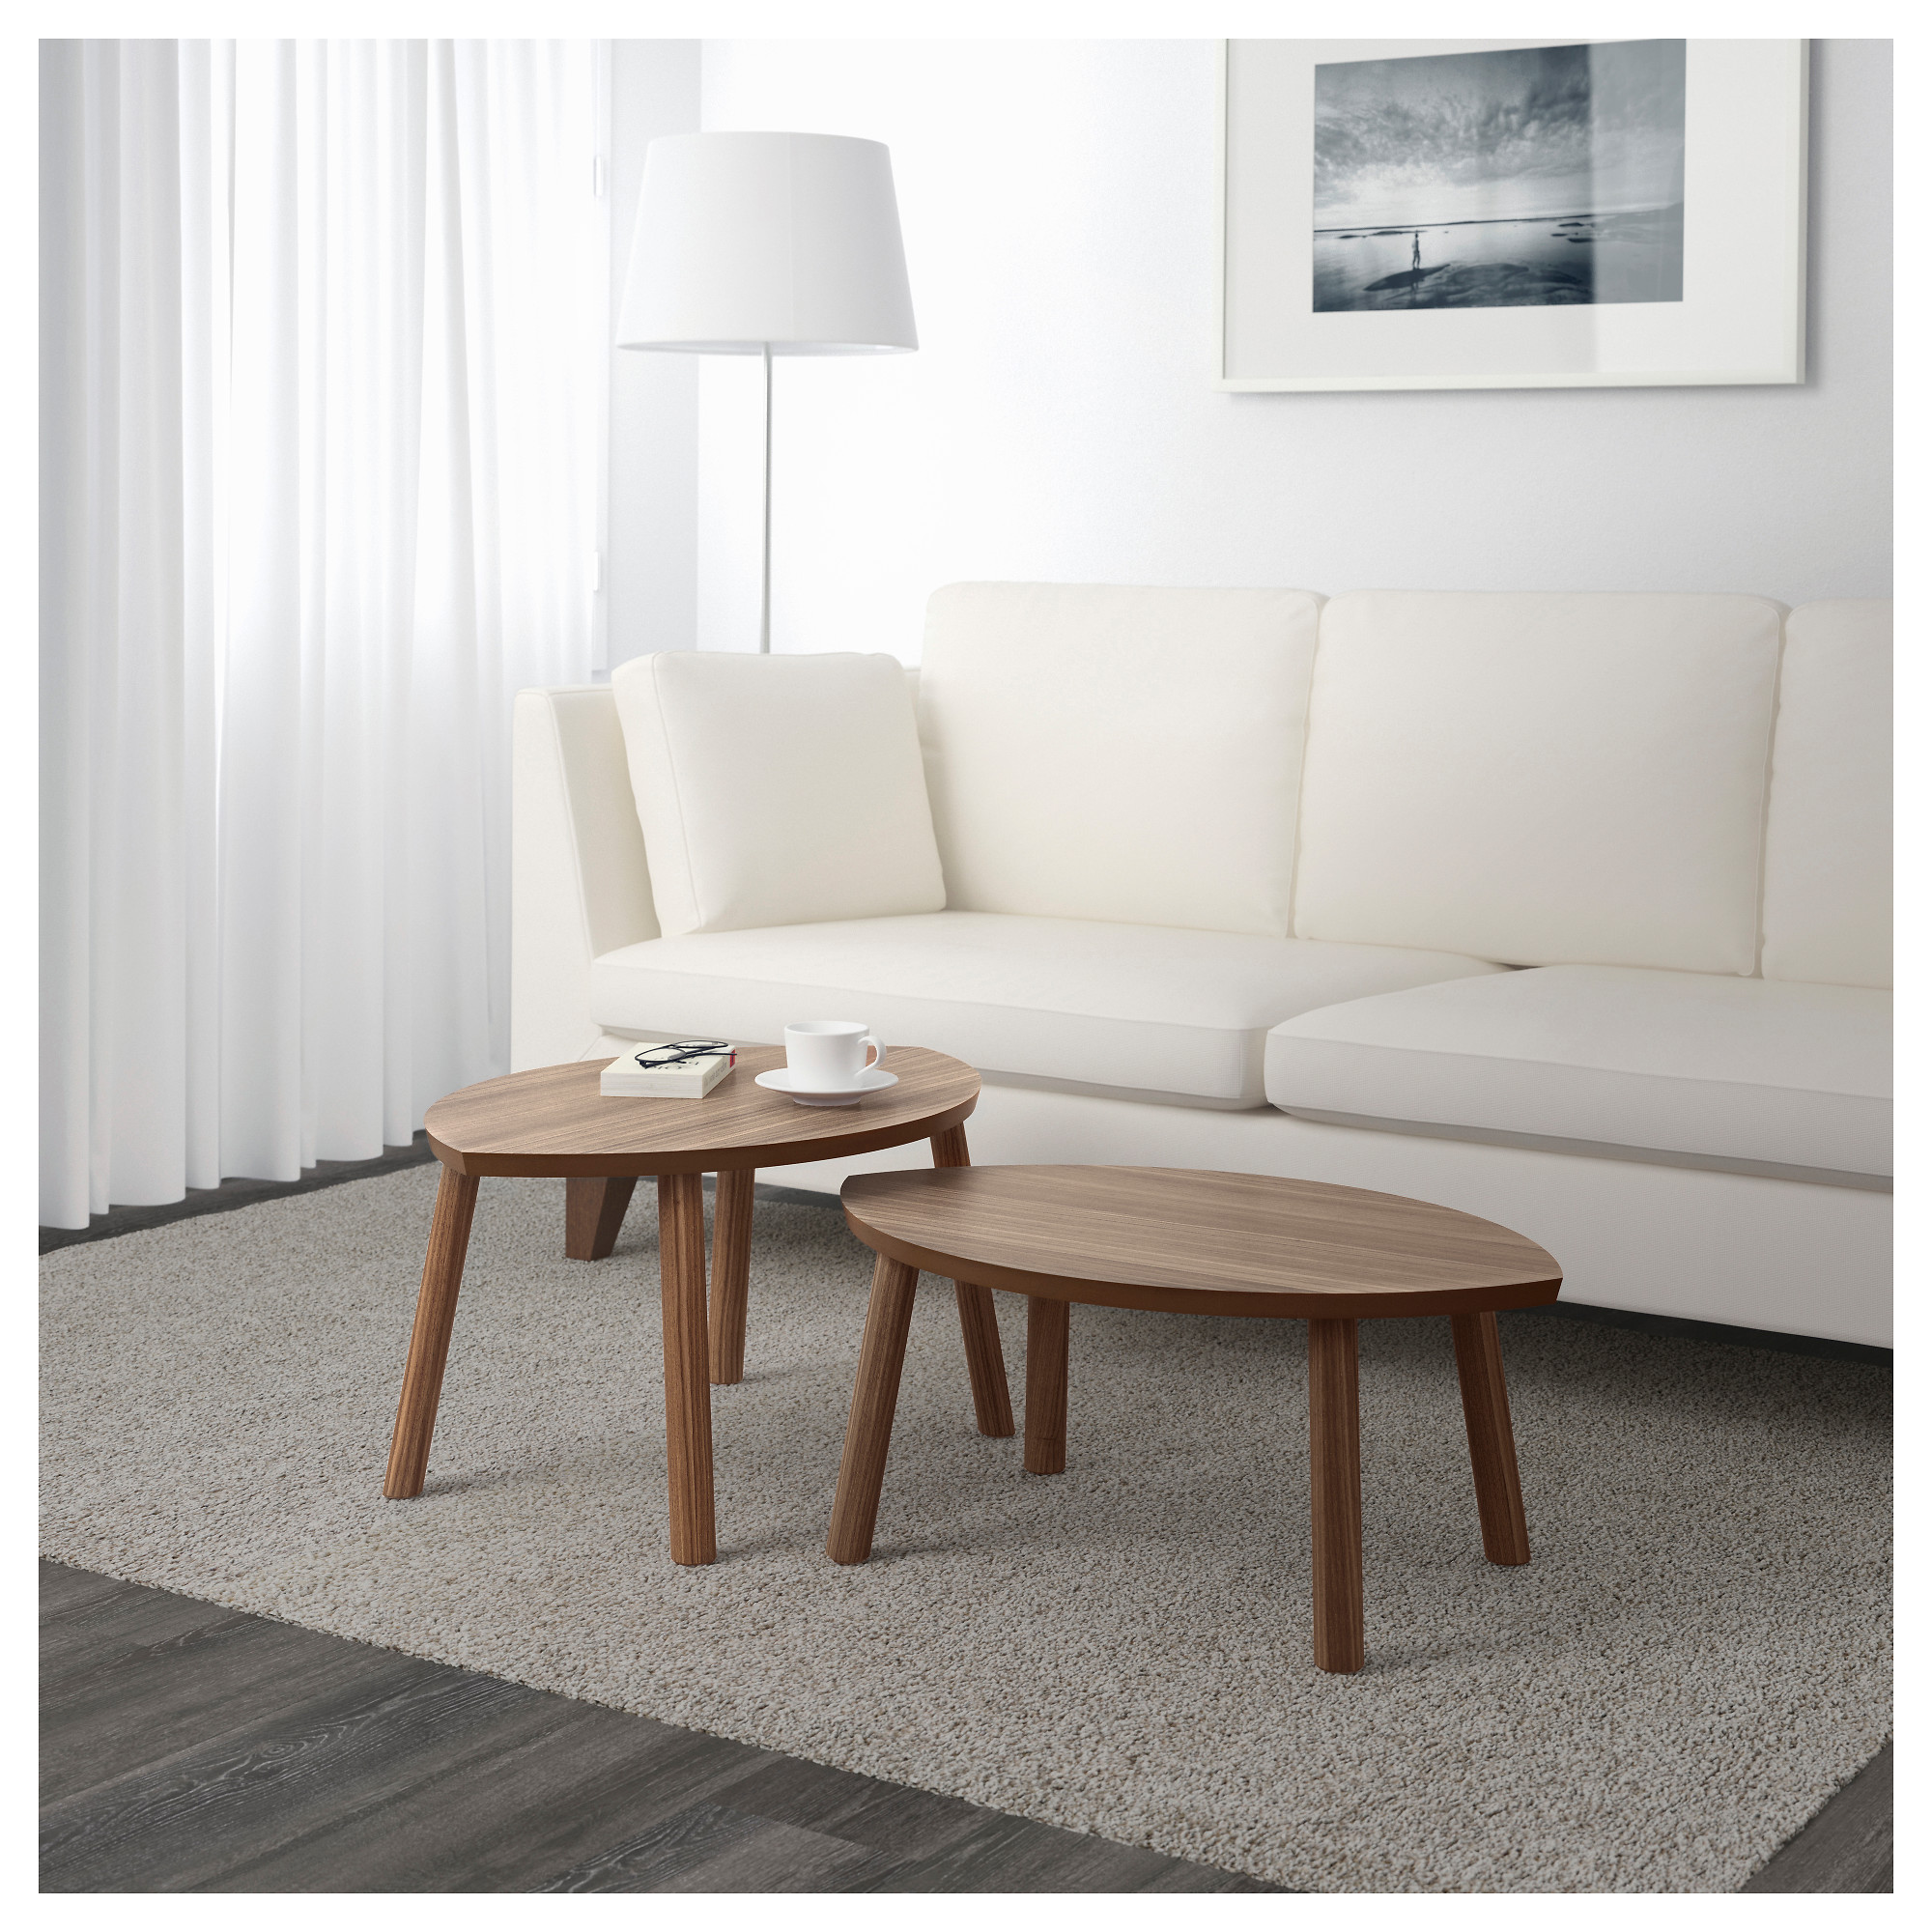 Stockholm Couchtisch Stockholm Table Ikea House Architecture Design